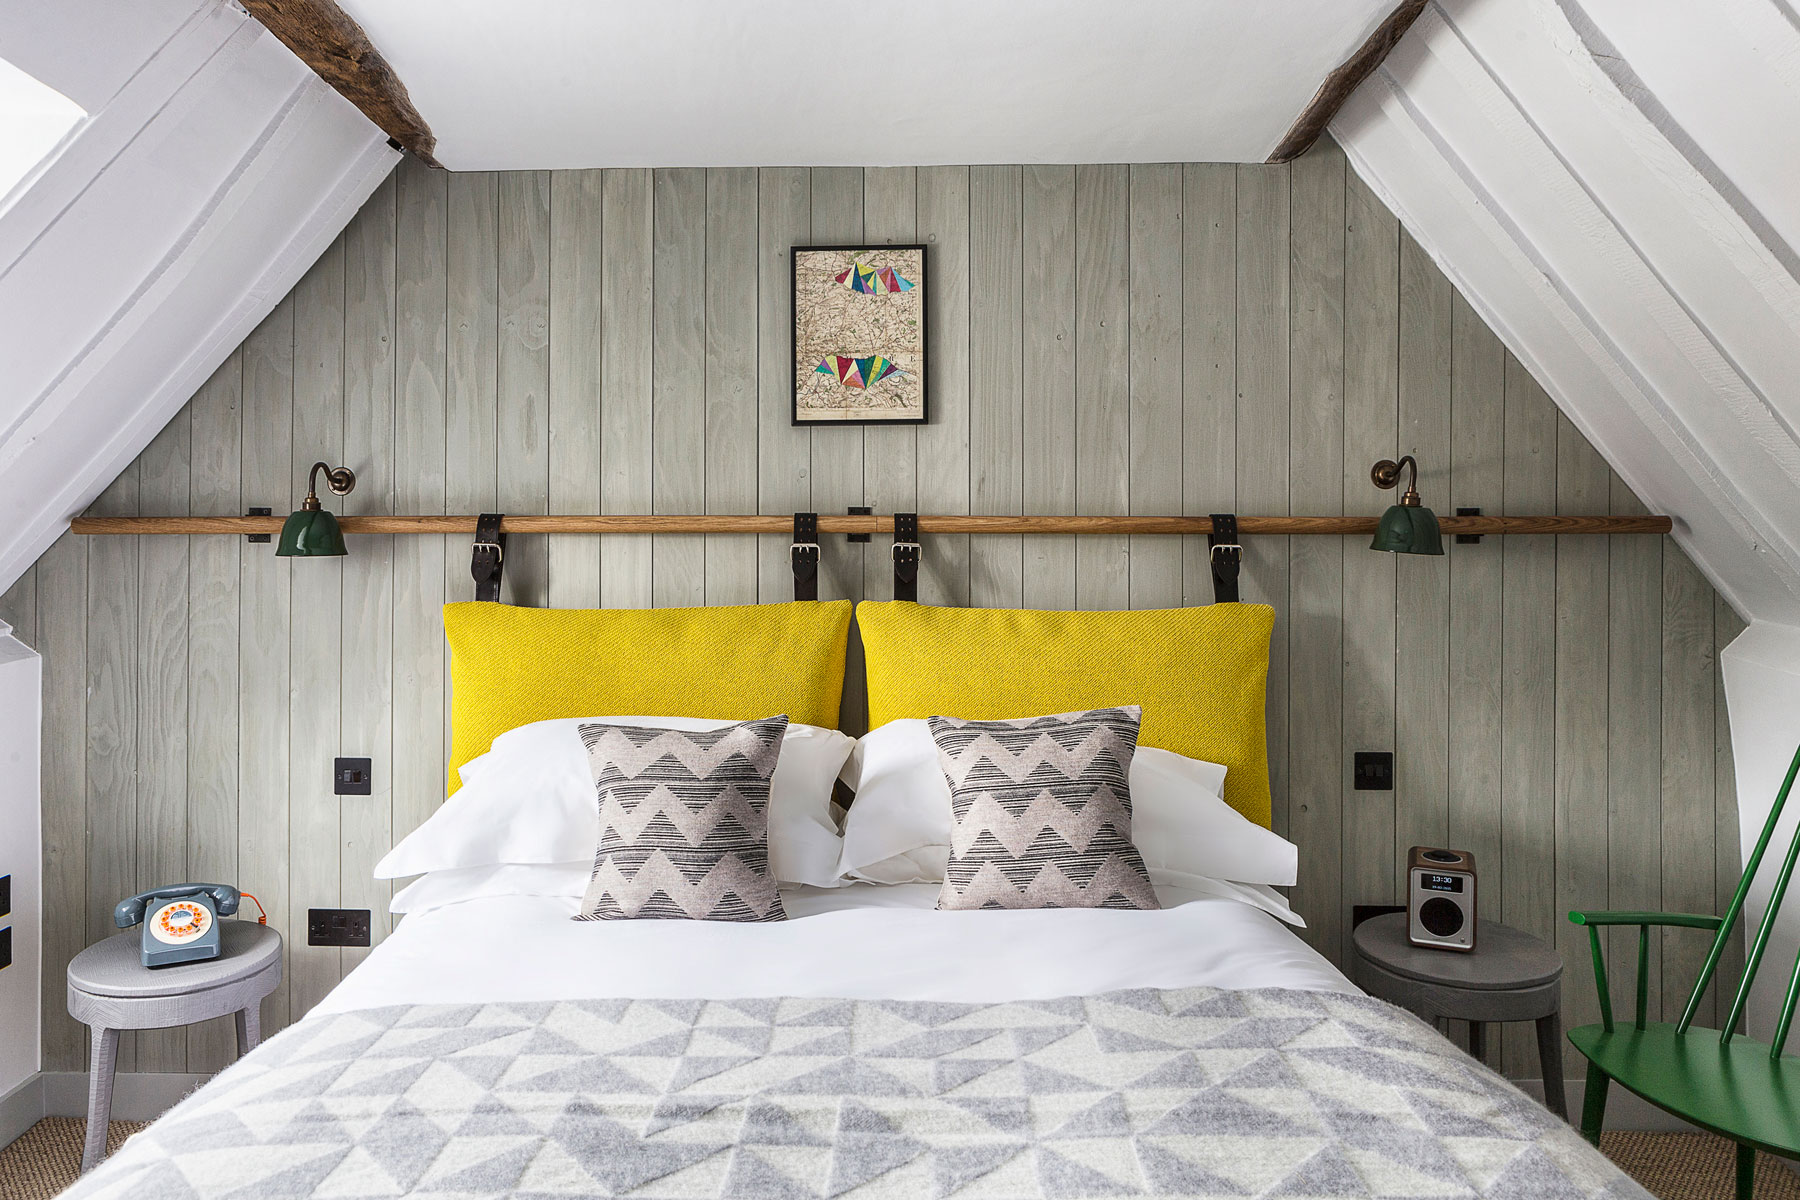 The Old Stocks Inn: A Scandi-Cool Sanctuary In The Postcard-Perfect Cotswolds 4